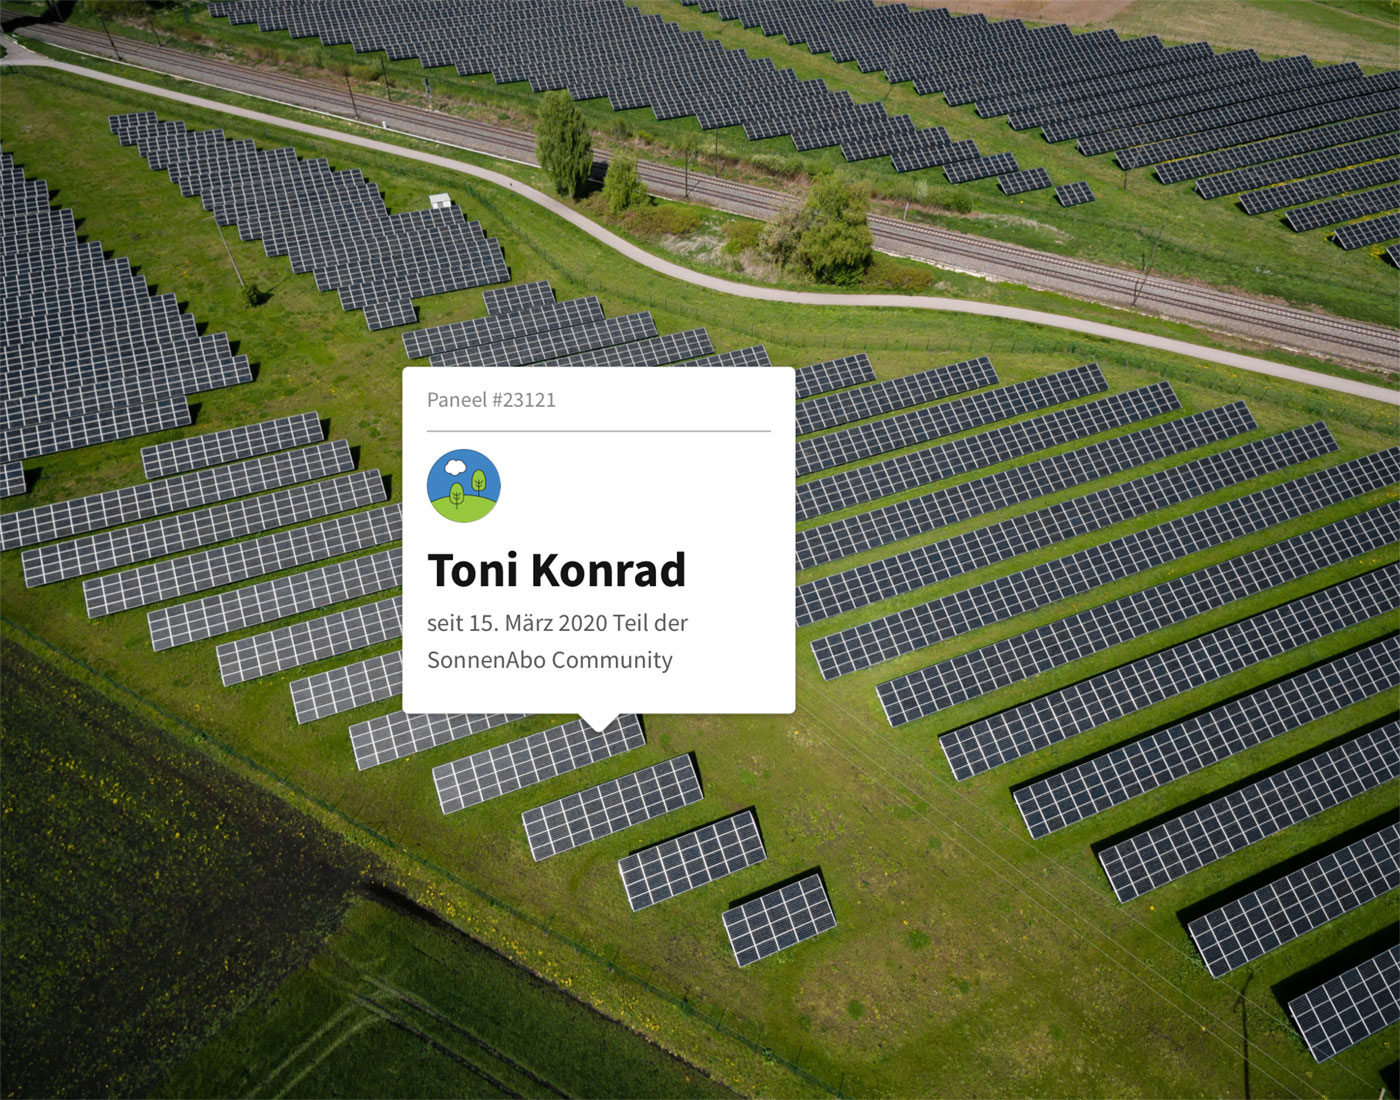 image of a solar park. a customized ui element is pointing at one panel